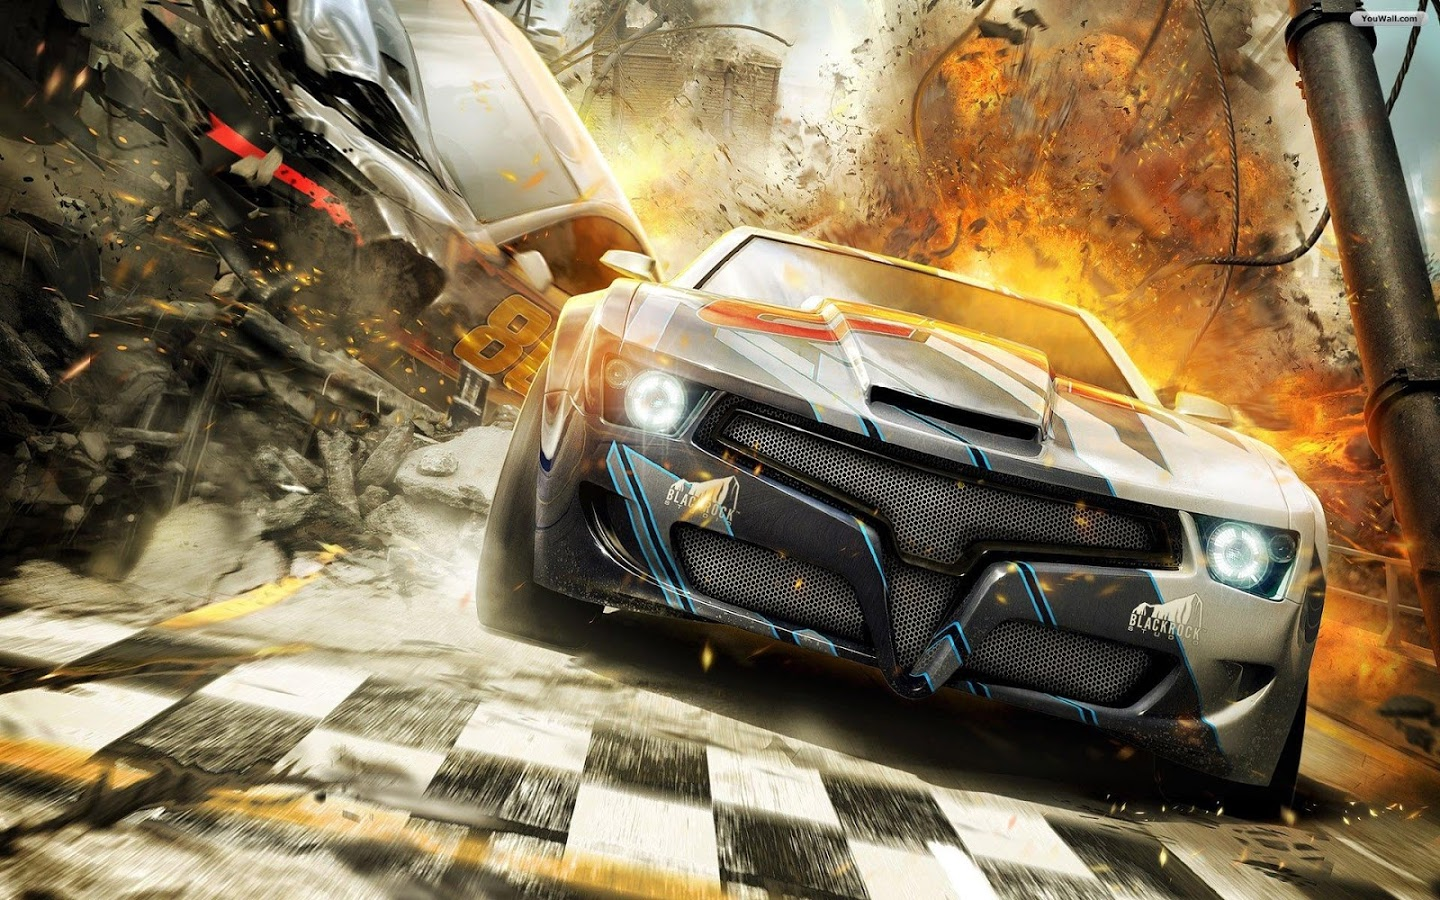 3D Racing Car Wallpaper - Android Apps on Google Play